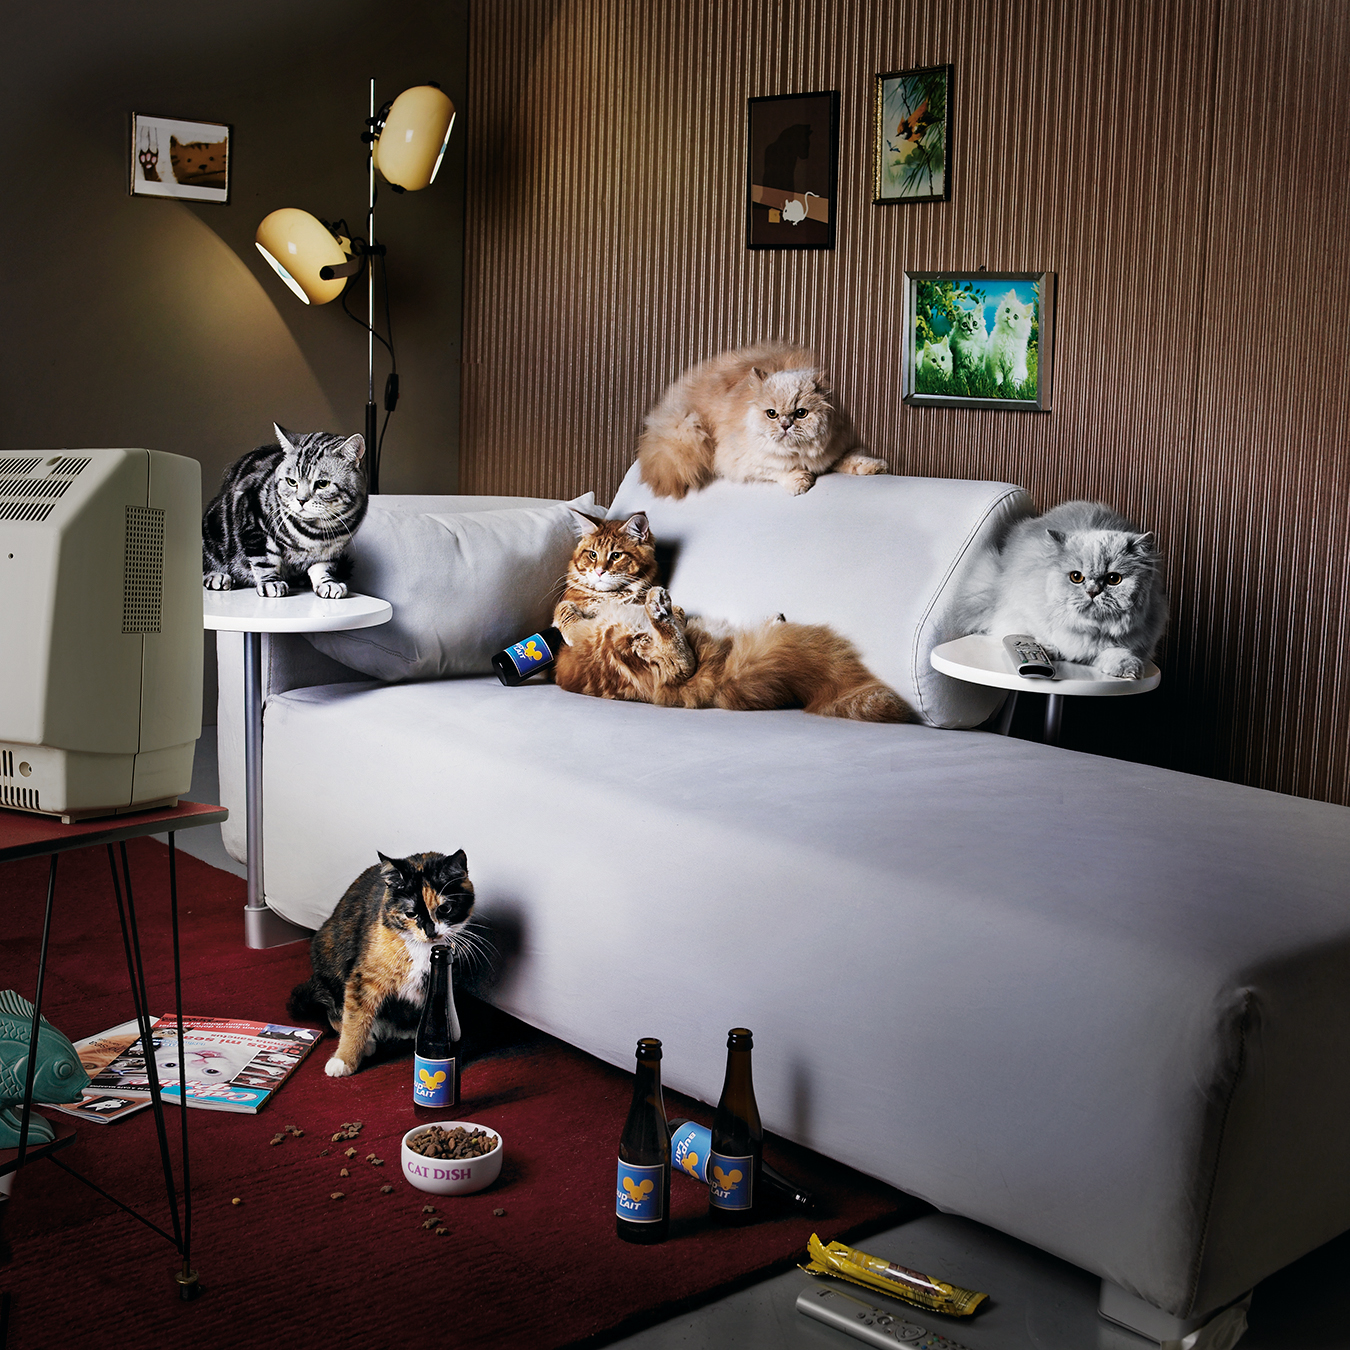 frontline-couchcats_v1-1.jpg